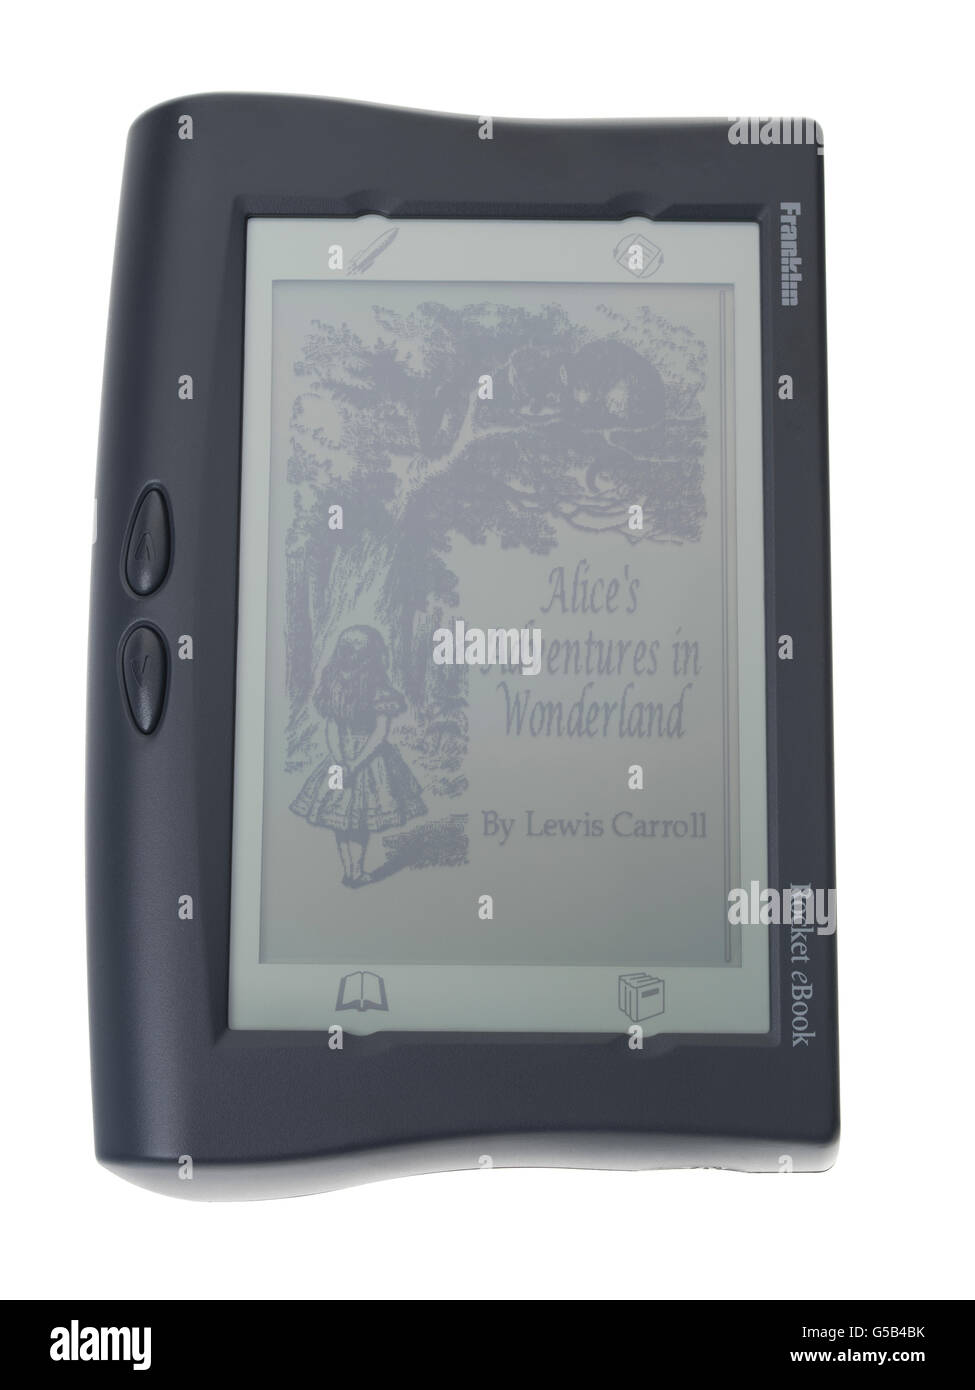 Franklin EB-500 Rocket eBook electronic reader by   NuvoMedia 1998 - Stock Image